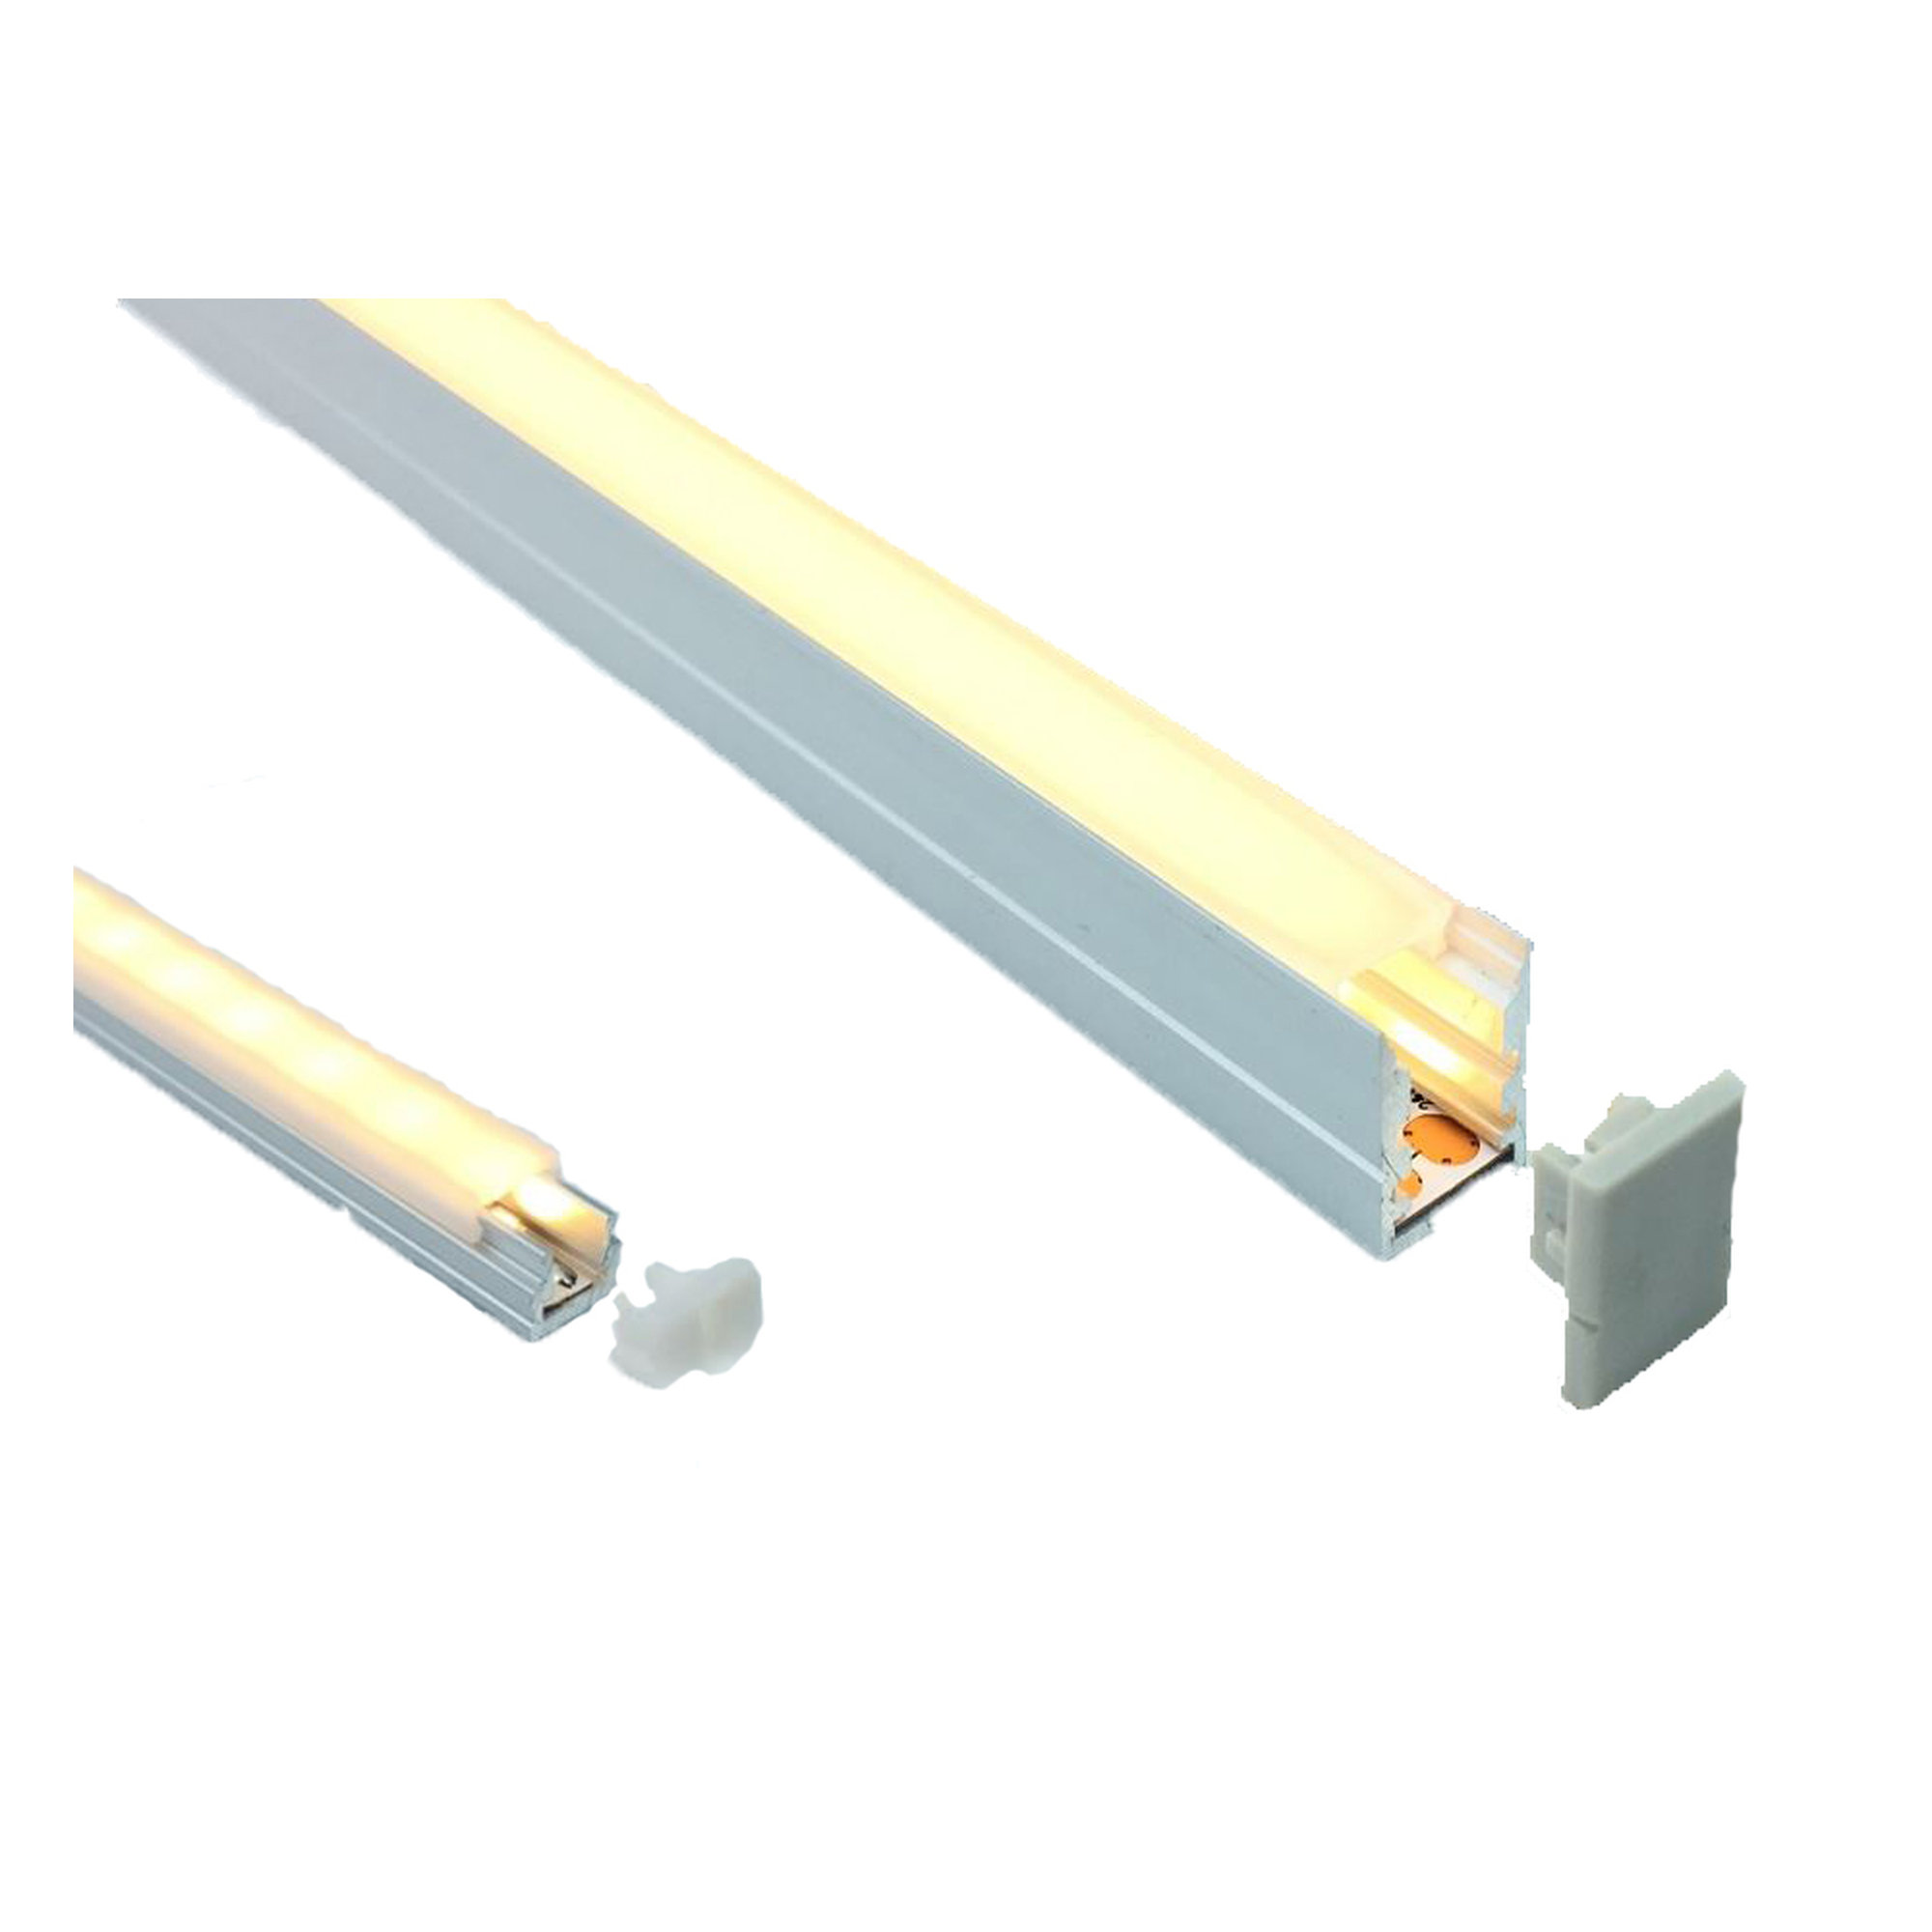 LED Profile 10 x 15mm Clear Diffuser